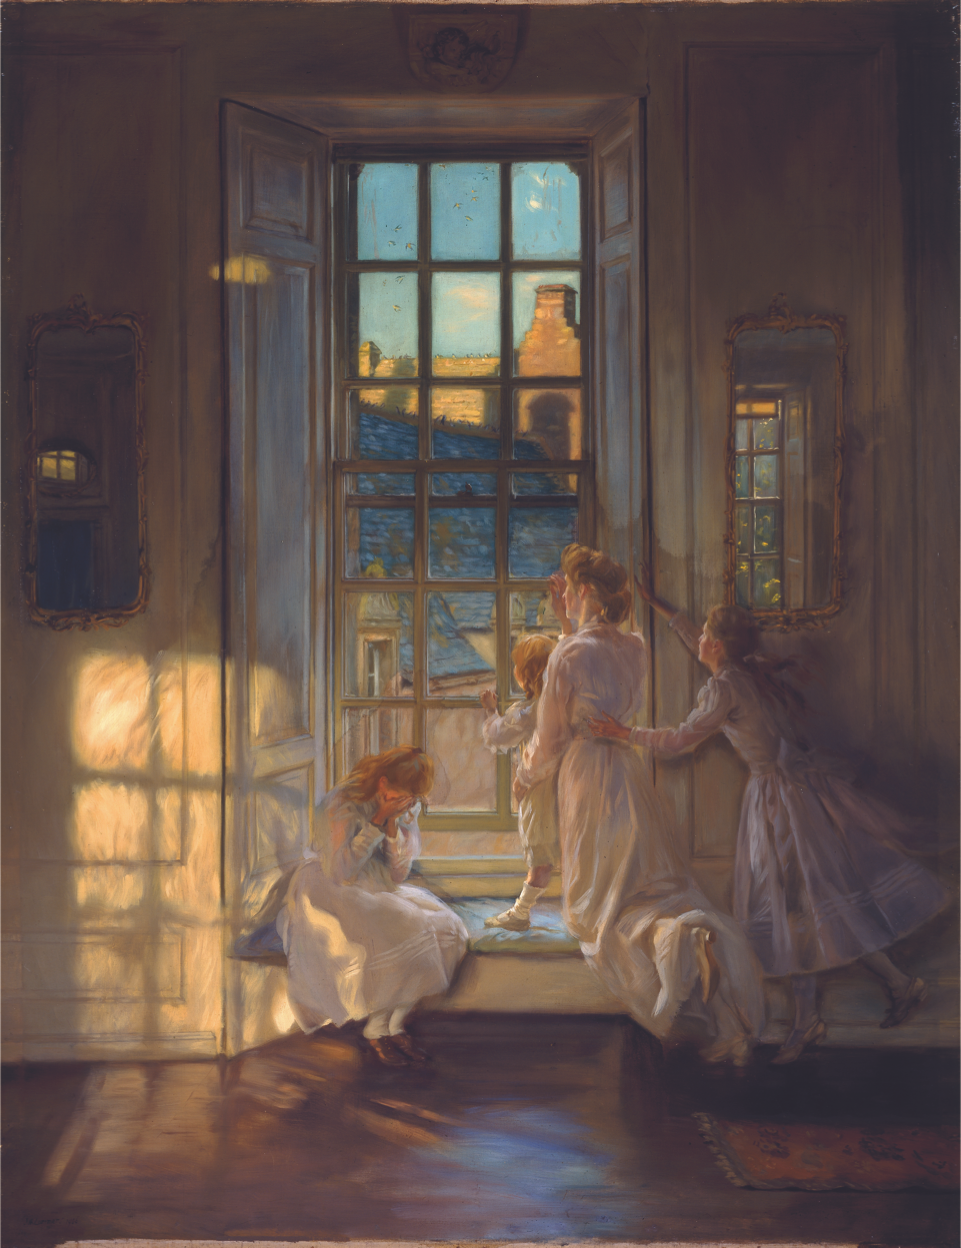 The Flight of the Swallows, oil on canvas, 1906 by John Henry Lorimer  (1856-1936).  City Art Centre, Museums and Galleries Edinburgh.